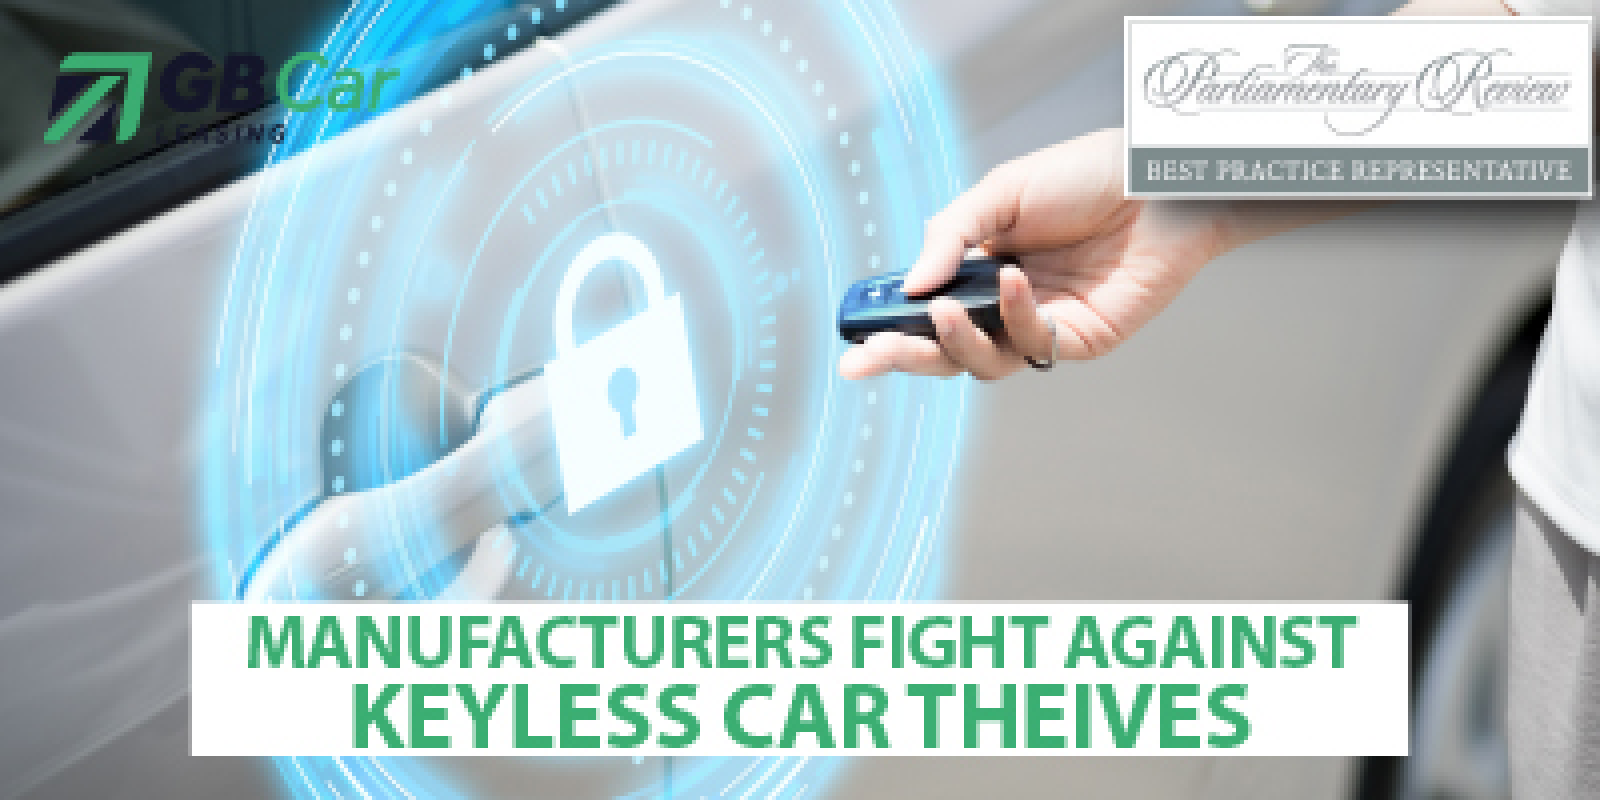 Manufacturers FINALLY fight back against keyless car thieves